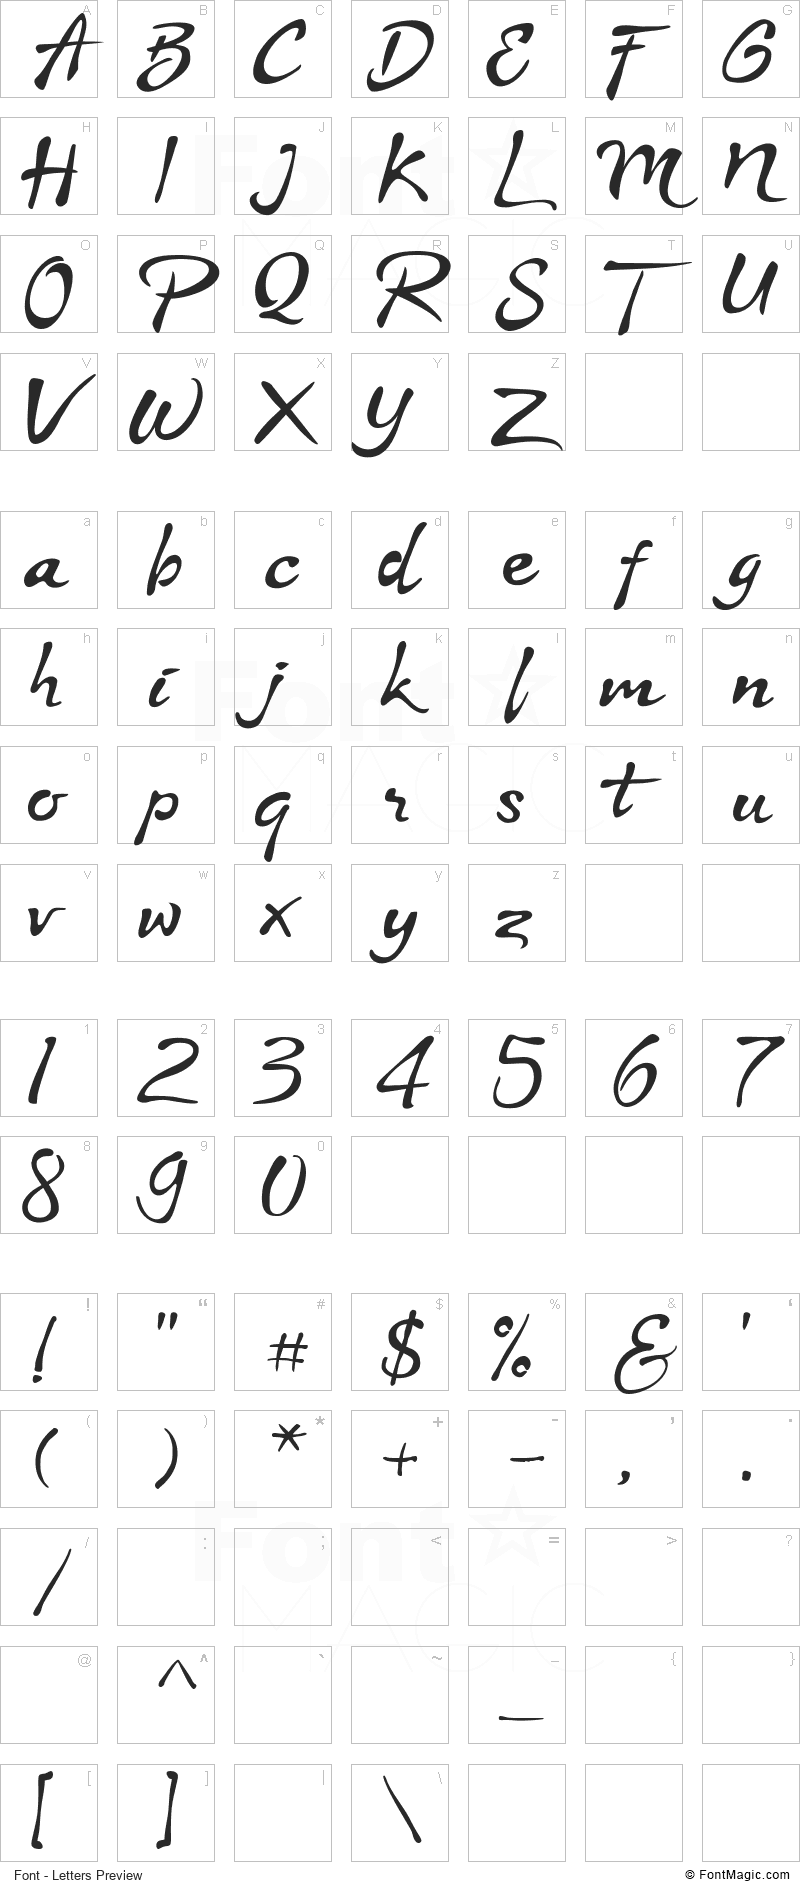 Stya Font - All Latters Preview Chart